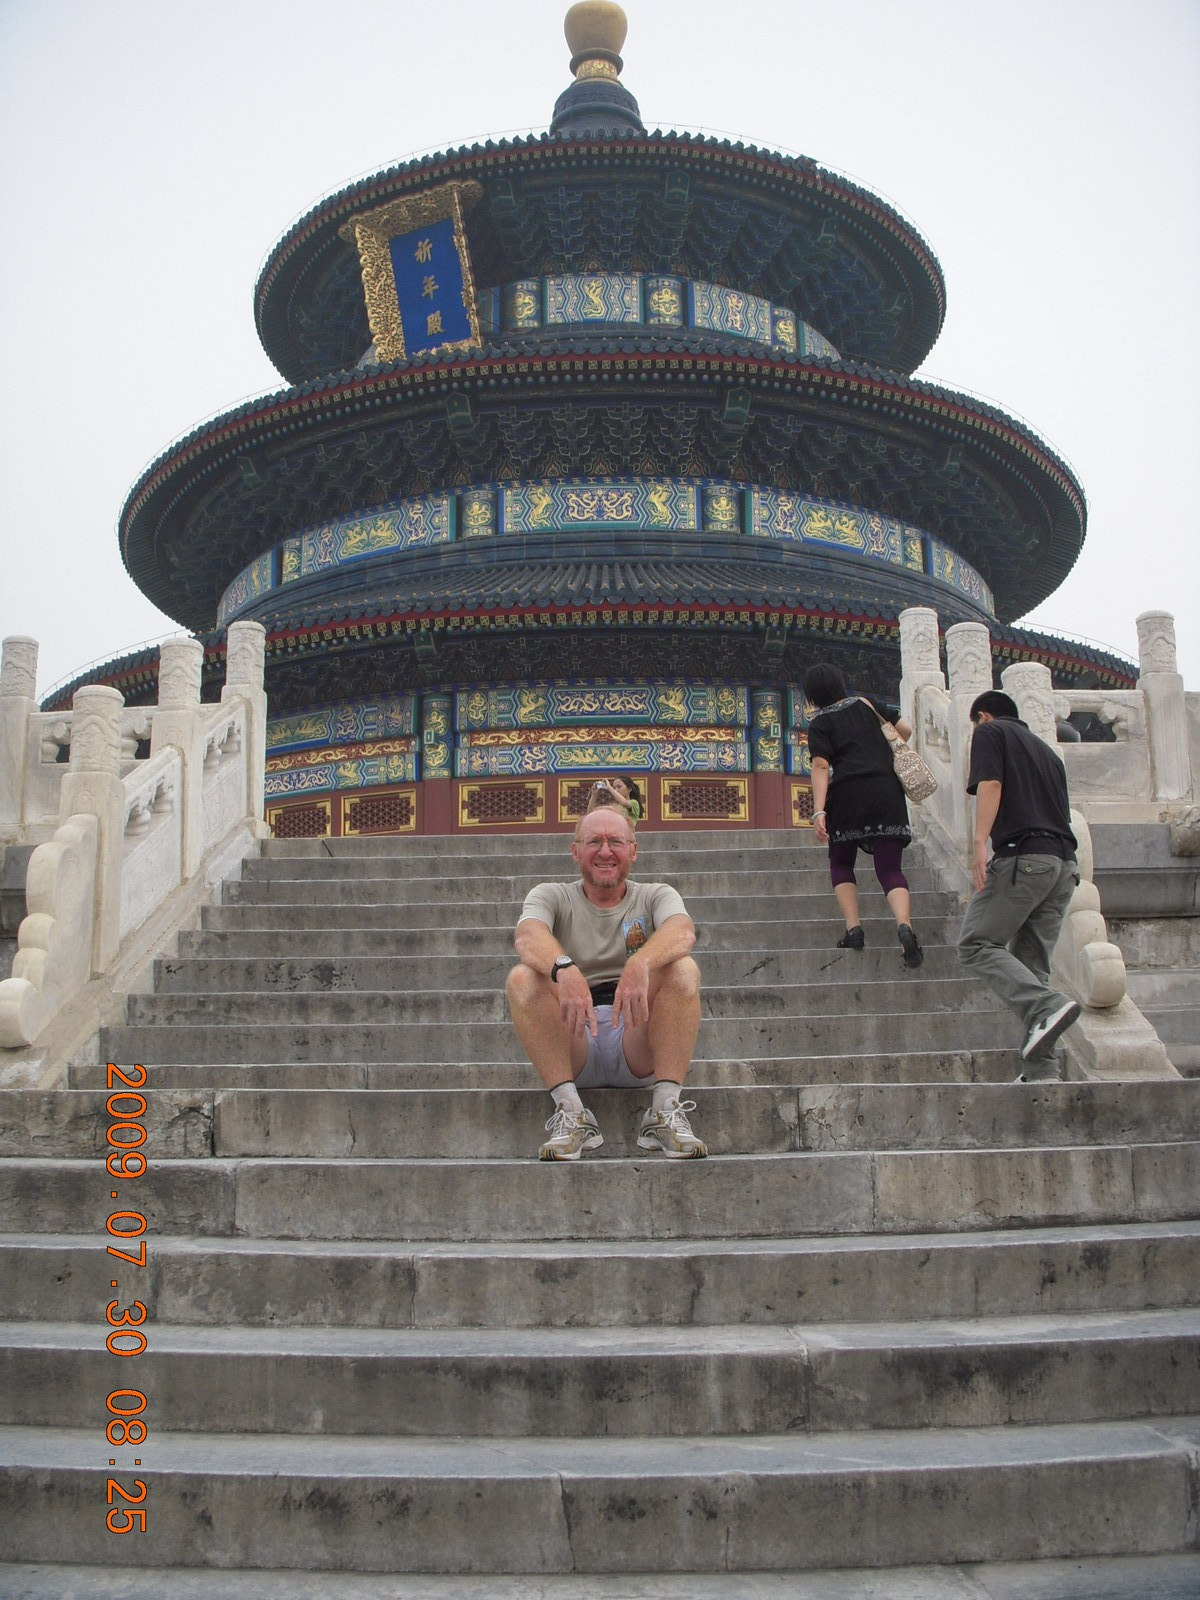 China eclipse - Beijing - Temple of Heaven - Adam